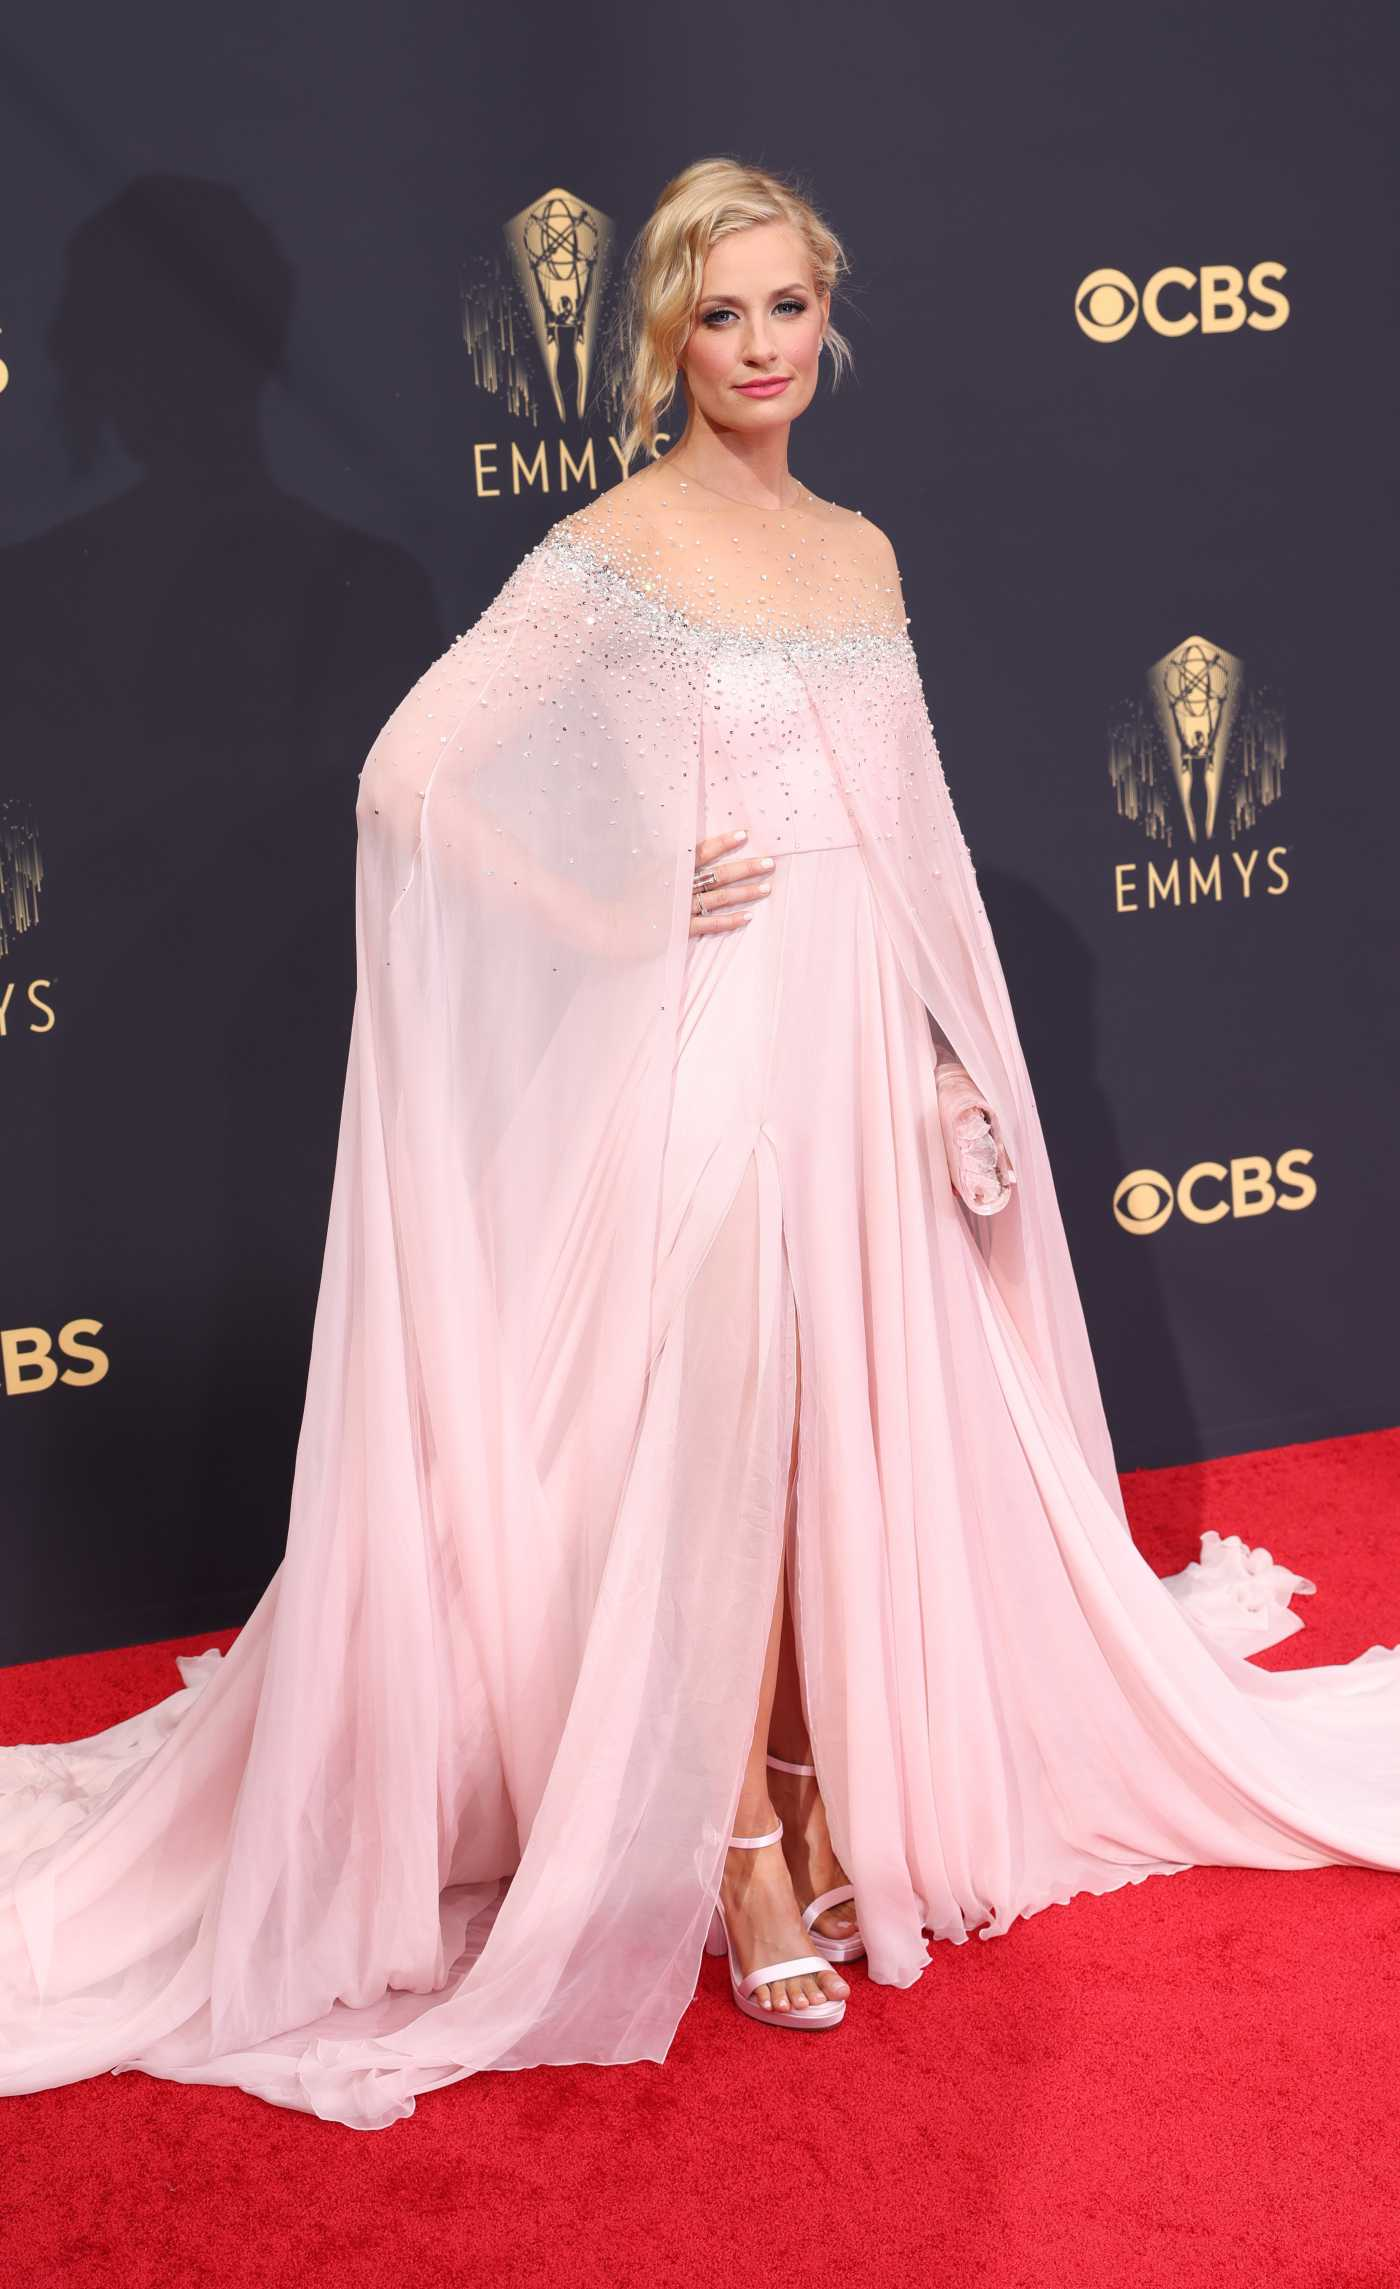 Beth Behrs Attends the 73rd Primetime Emmy Awards in Los Angeles 09/19/2021